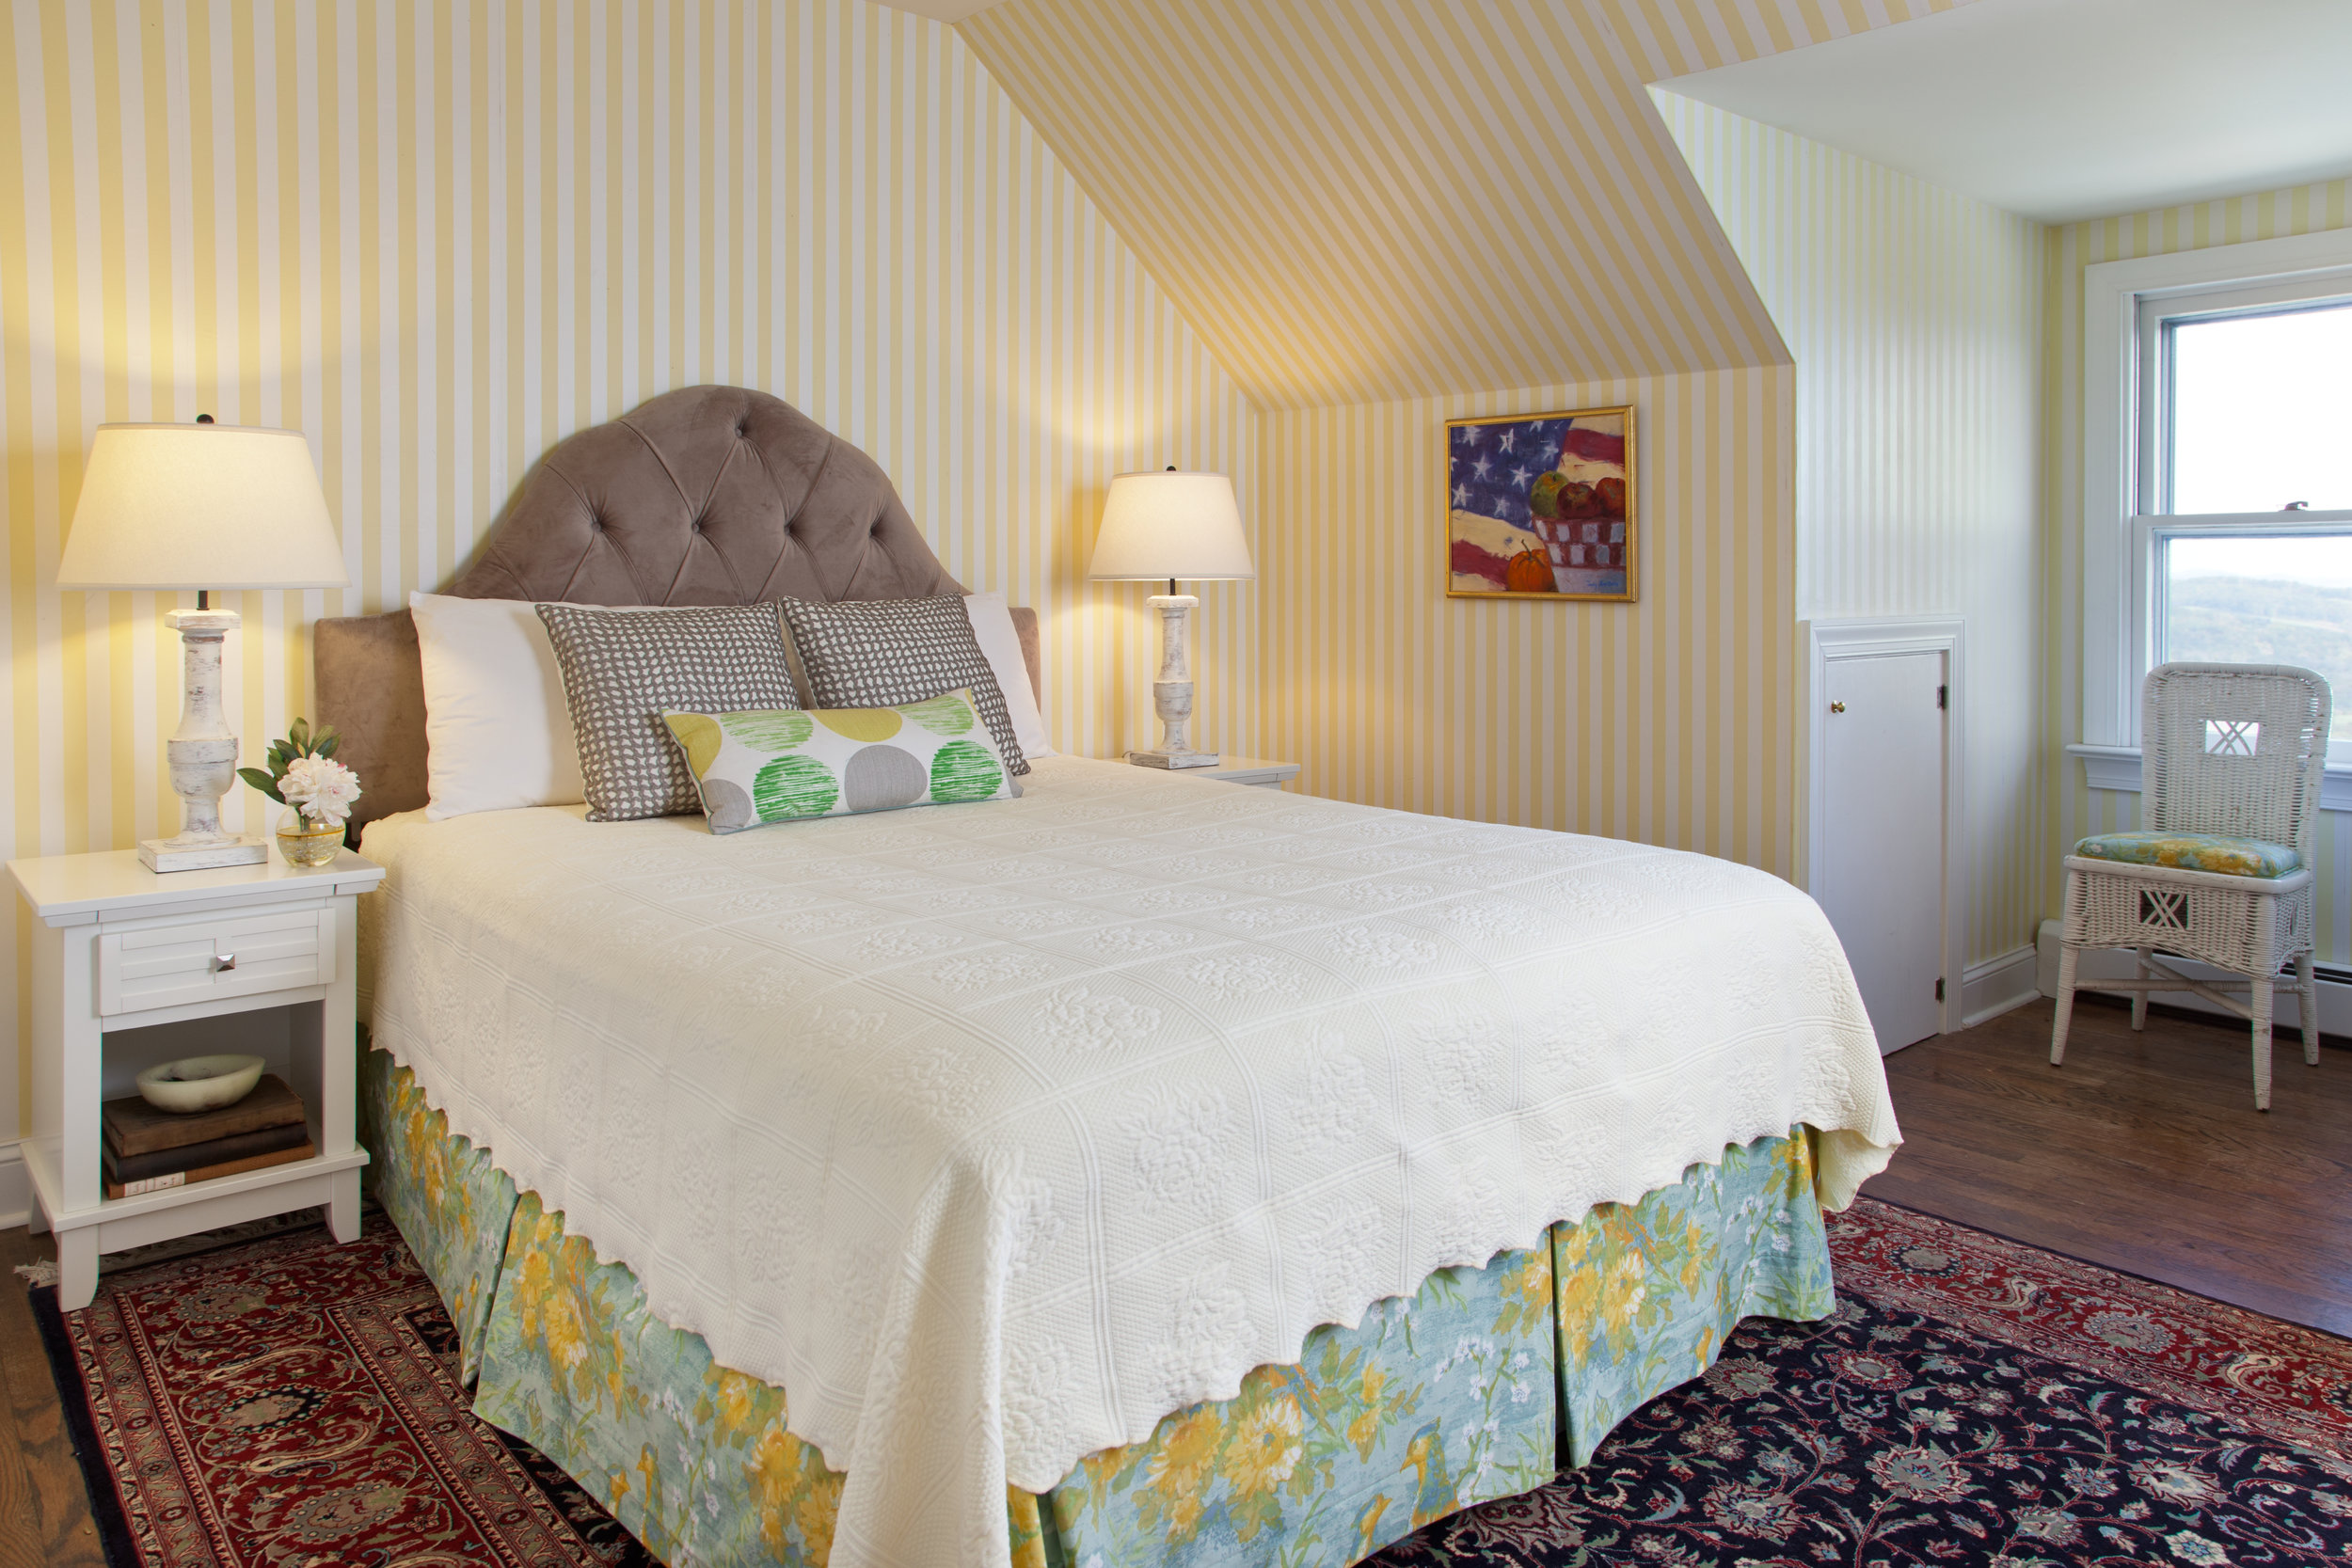 Bedroom Five - ◼︎ On the second floor◼︎ Shares bath with Bedroom 3◼︎ Entered from the hall◼︎ Queen bed